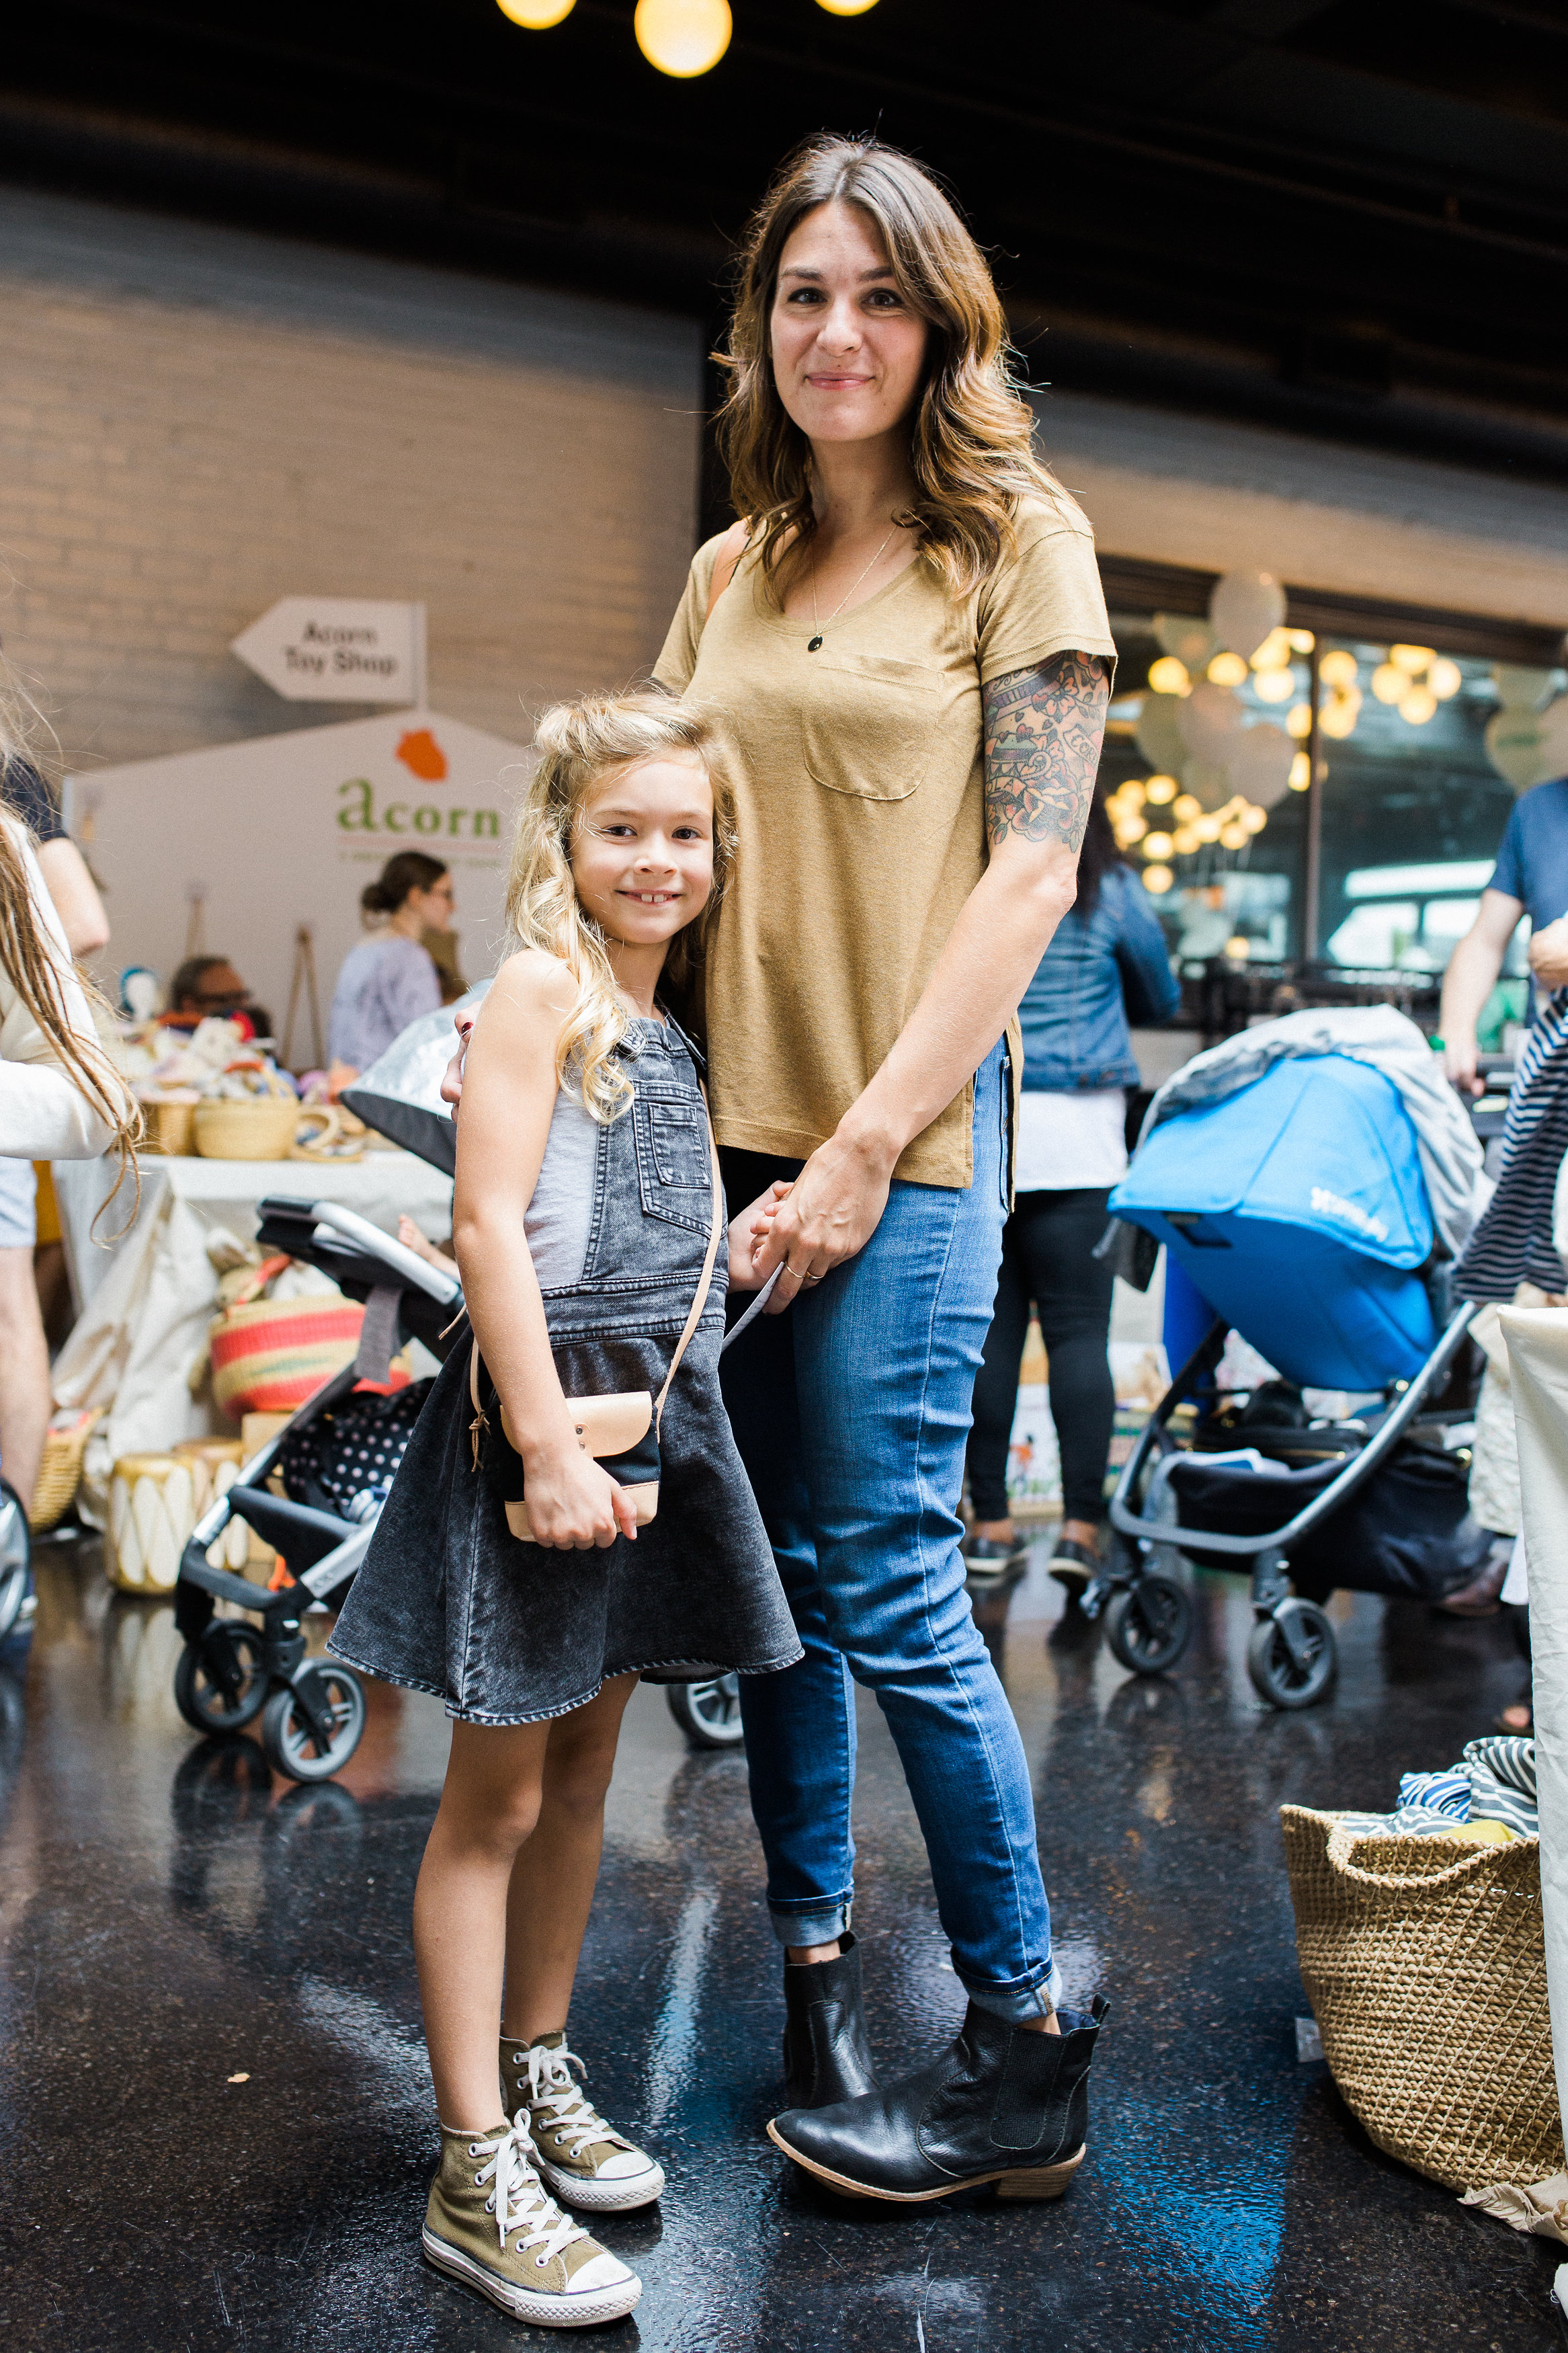 babyccino-kids-shopup-brooklyn-even-photography-3.jpg